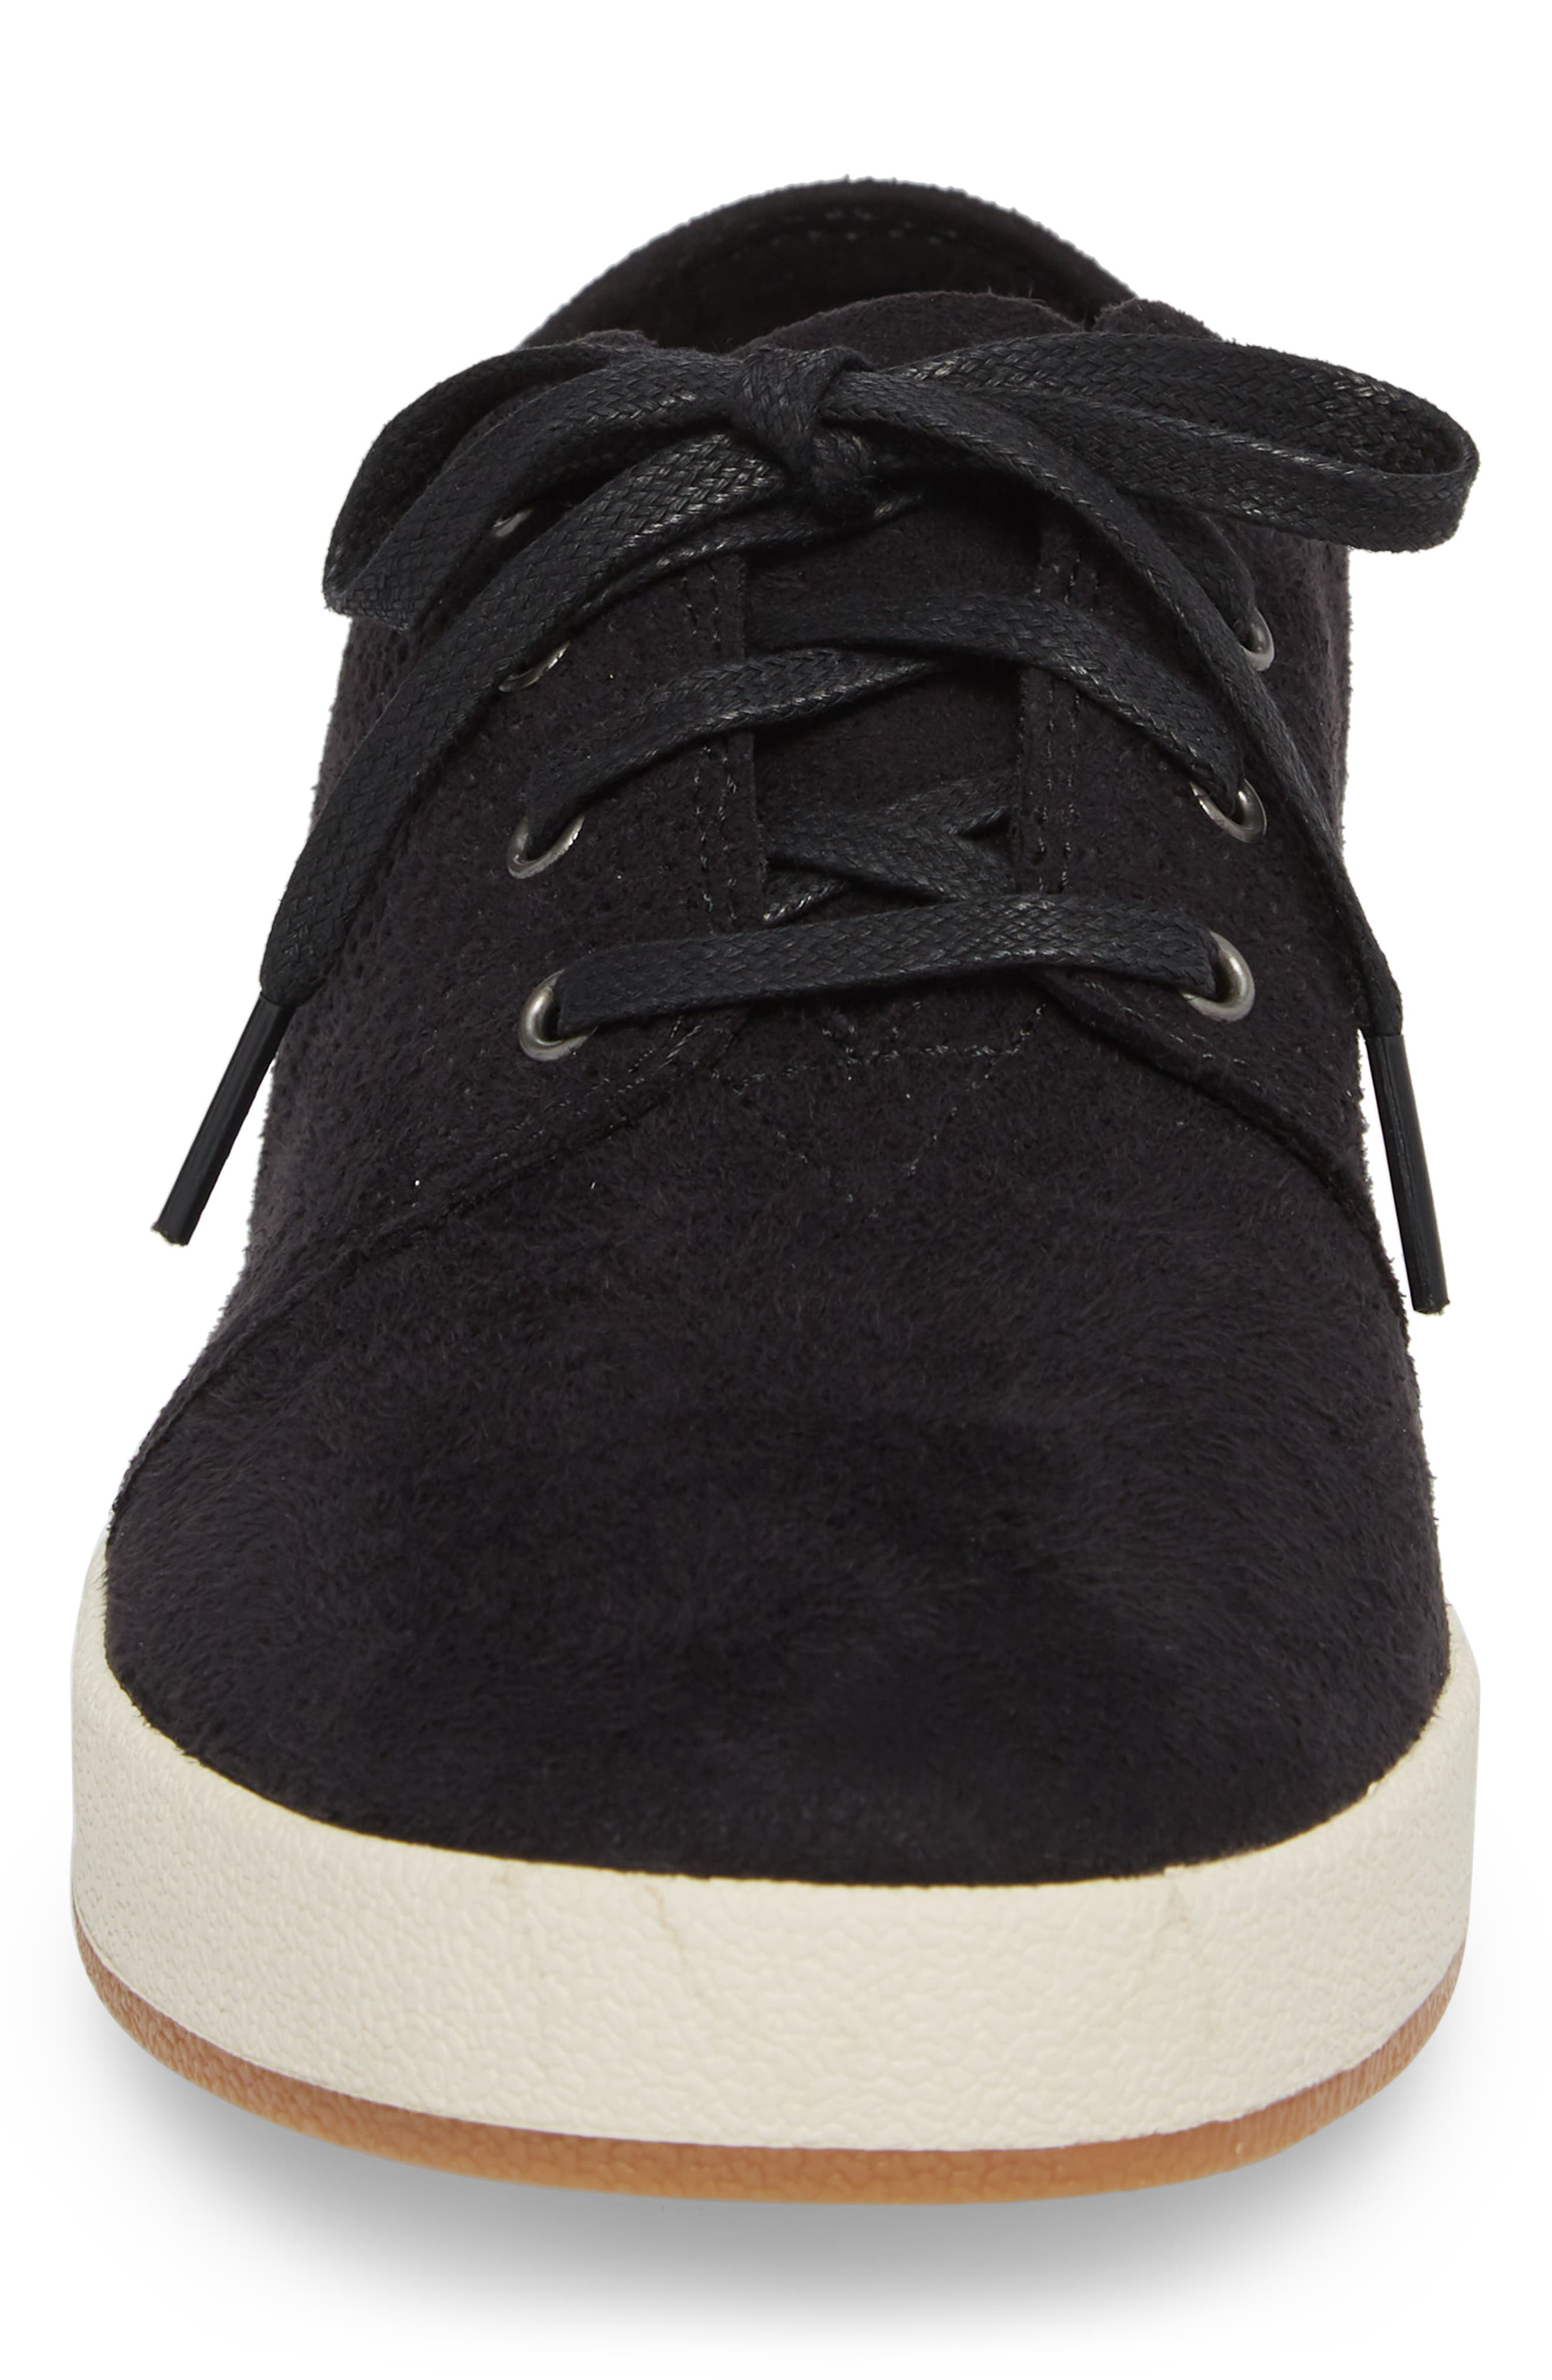 Payton Perforated Sneaker,                             Alternate thumbnail 4, color,                             001